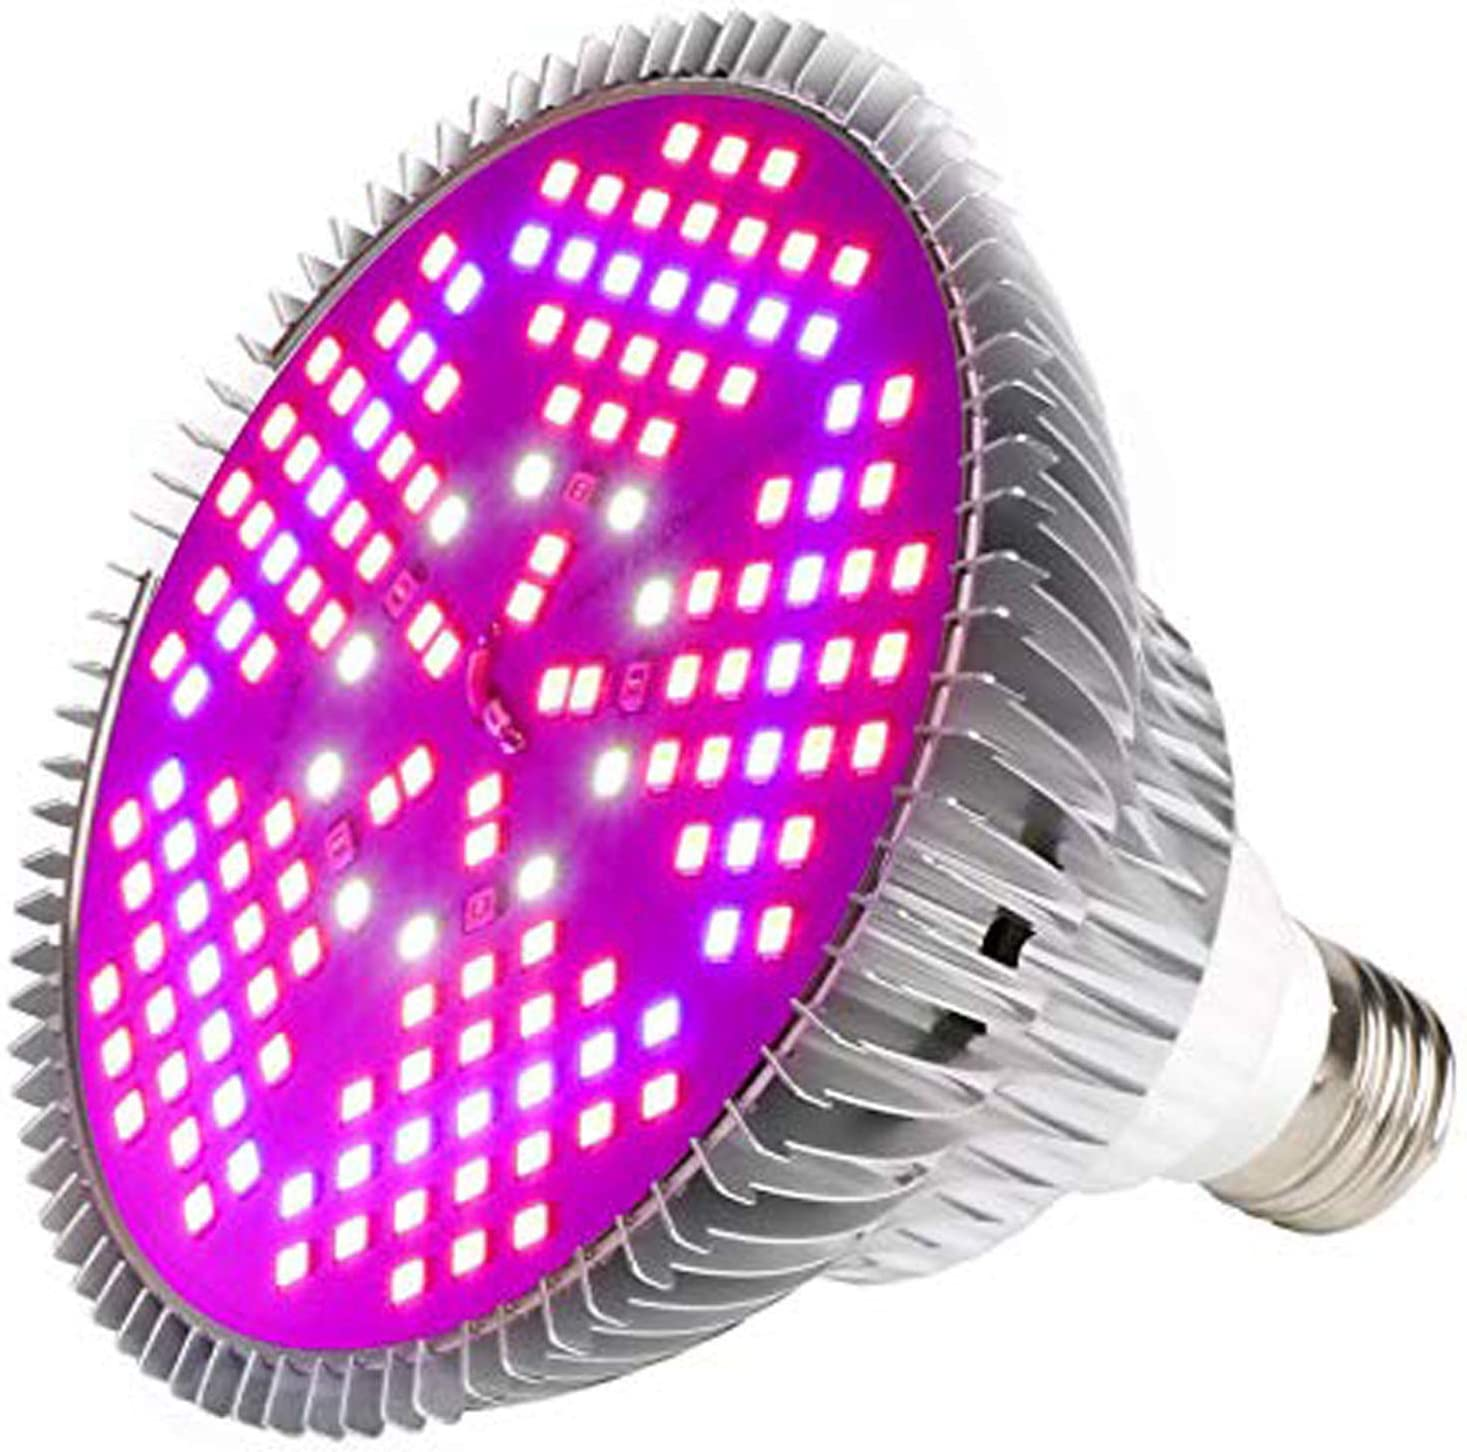 LED Grow Light Full Spectrum Indoor Hydroponic Plant Flower Growing Lamp Bulb